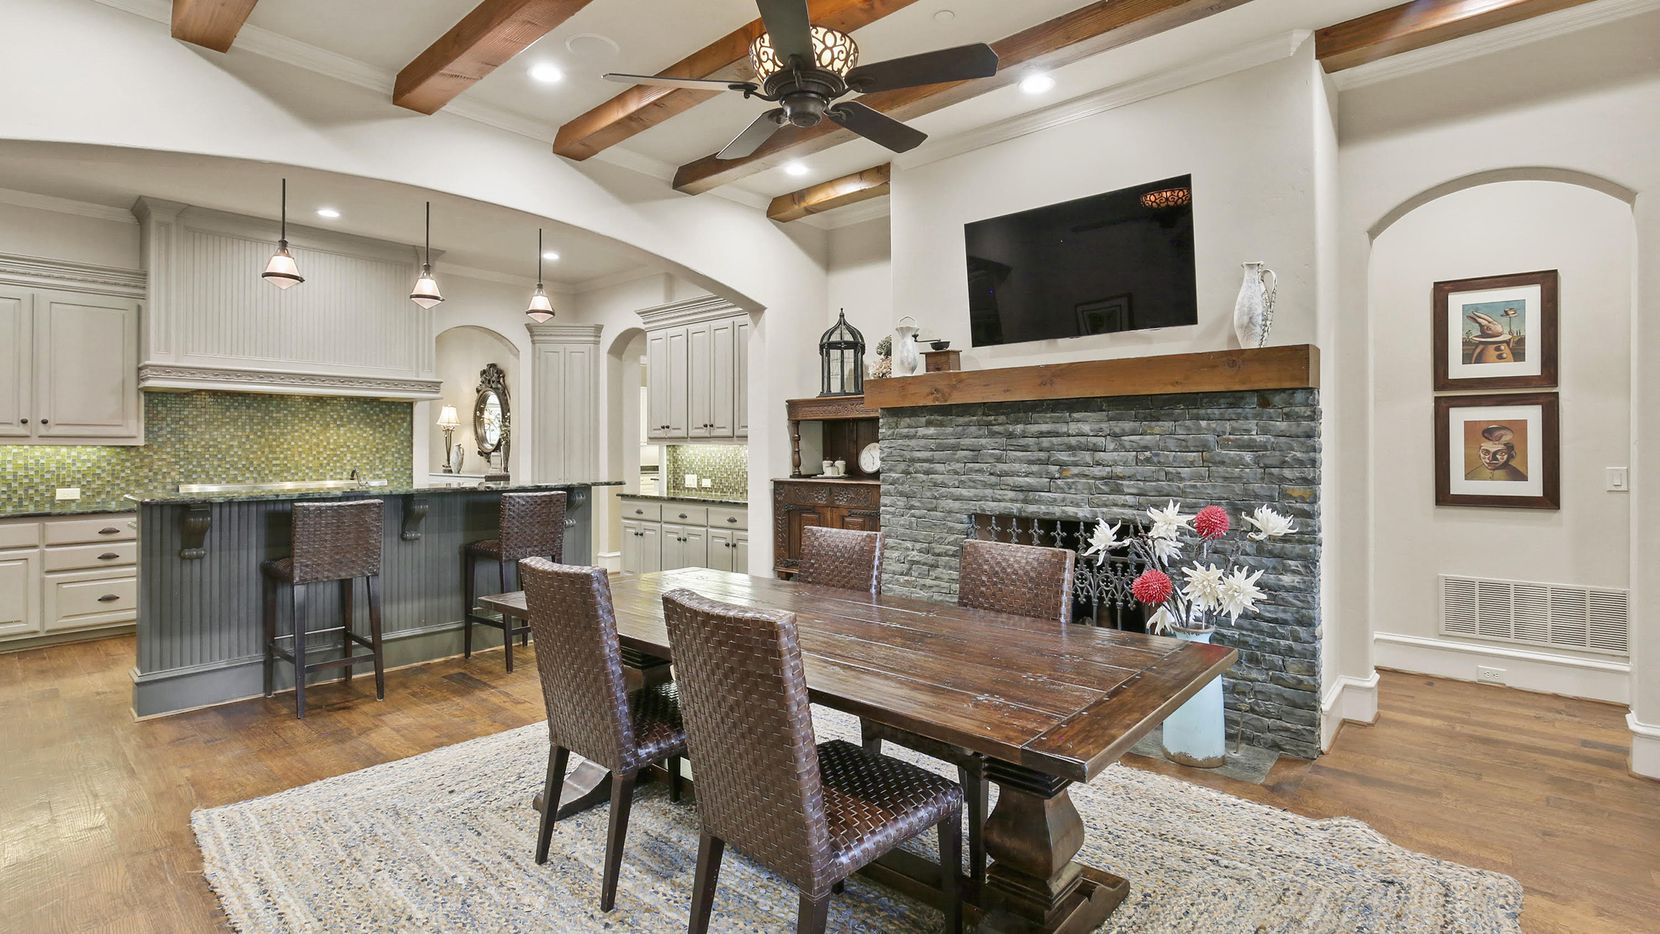 Priced at $1,899,000, the Hawkins-Welwood estate at 5818 Club Oaks Court features a butler's pantry with a wine room, pool, play yard and vegetable garden.